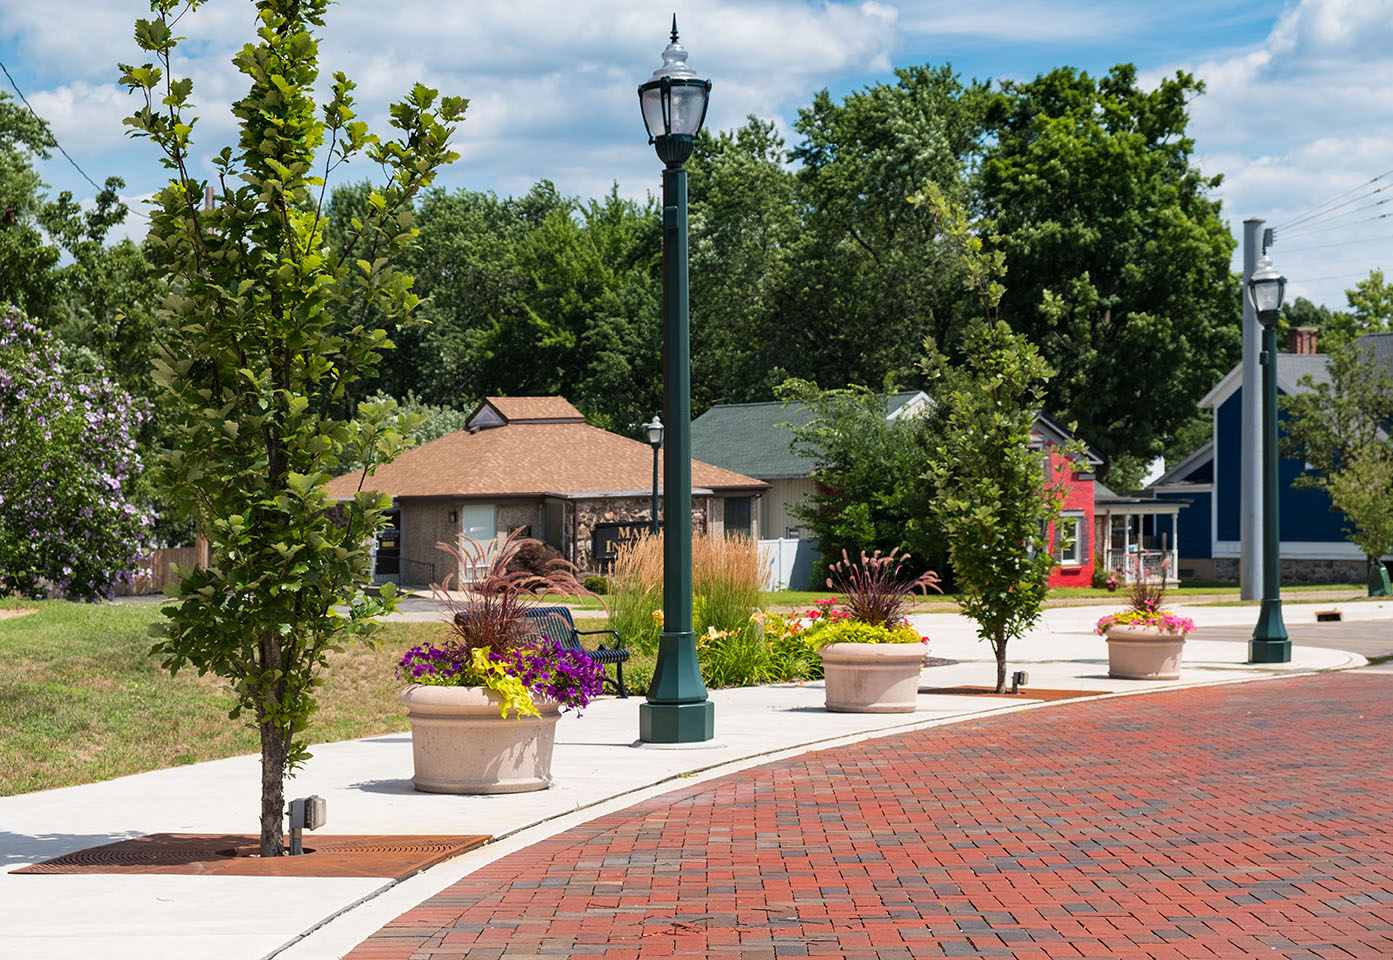 Dowagiac Quality of Life streetscape with trees